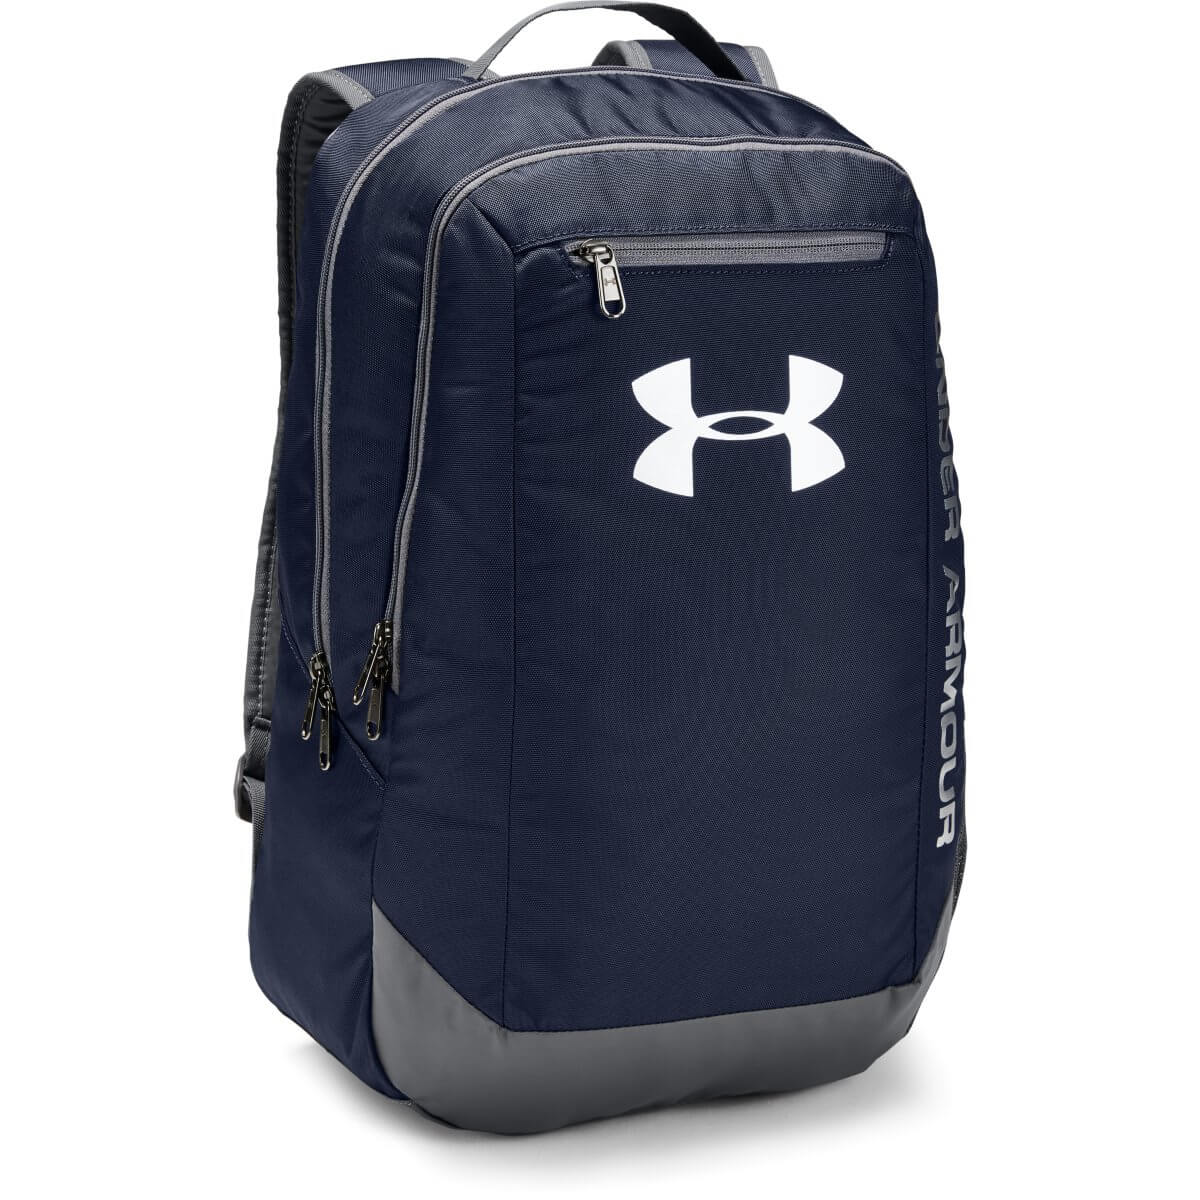 Batoh Hustle Backpack LDWR Navy - Under Armour